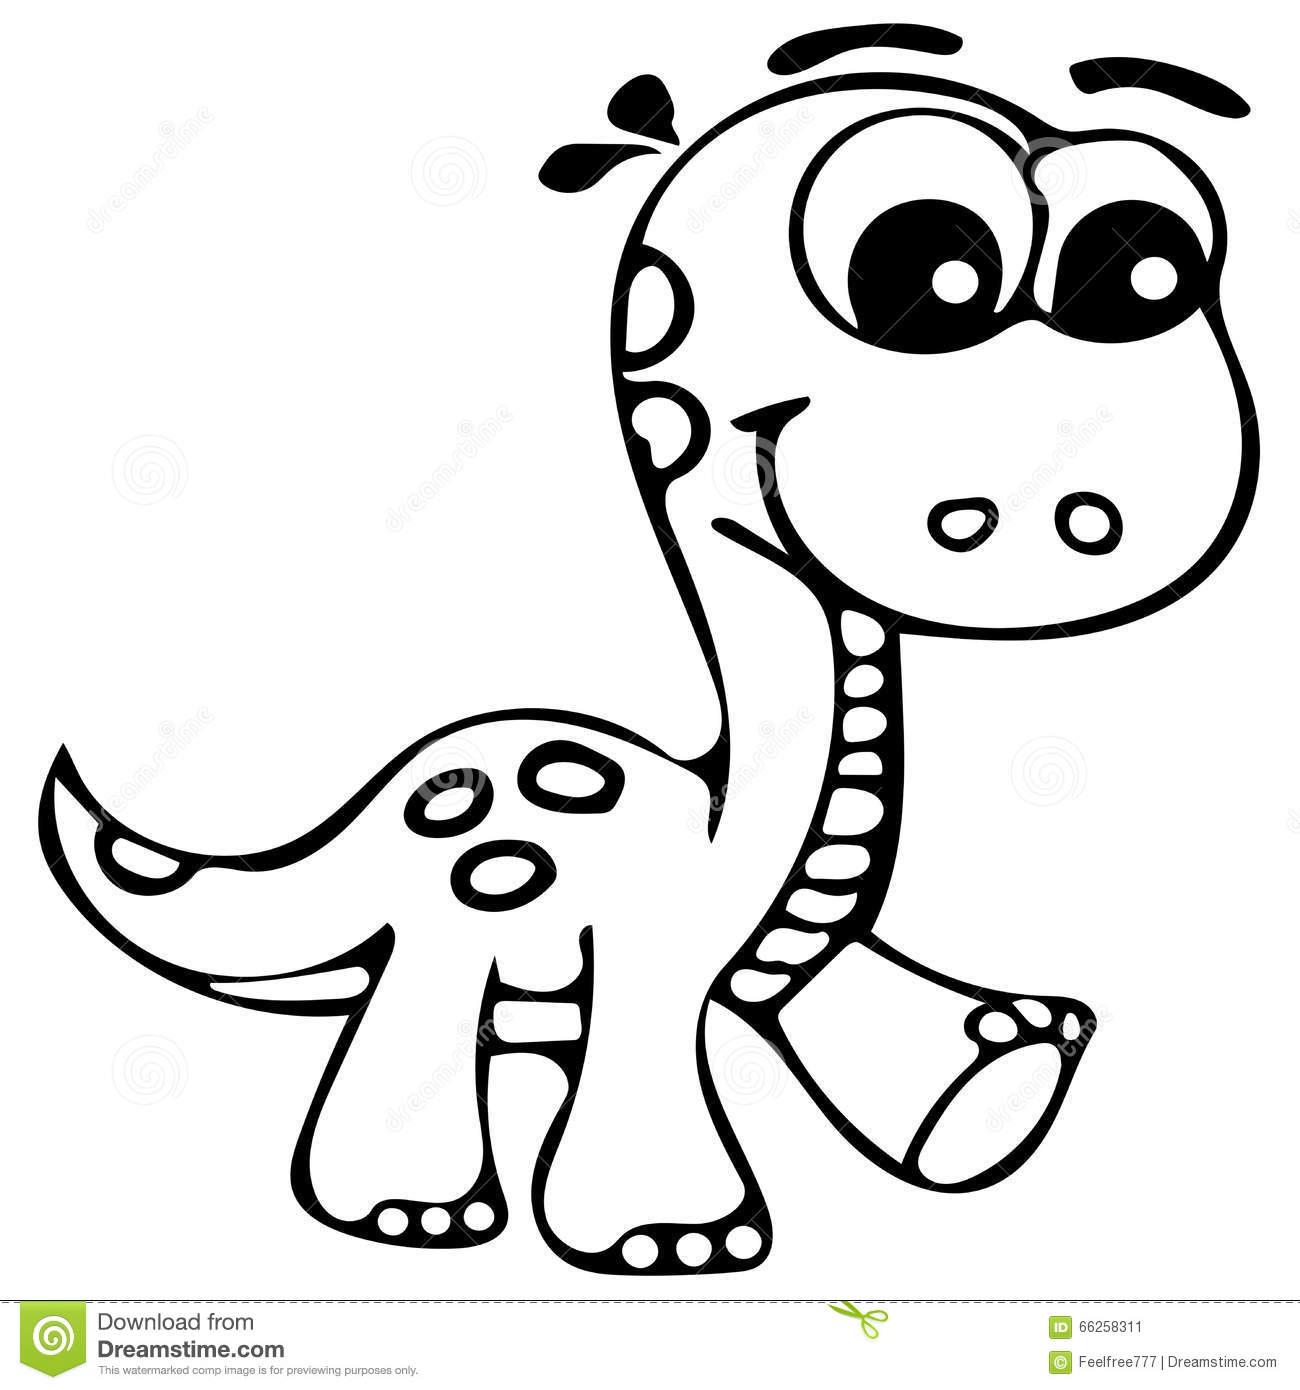 1300x1390 Coloring Pages Cute Dinosaur Drawings Doodles Coloring Pages